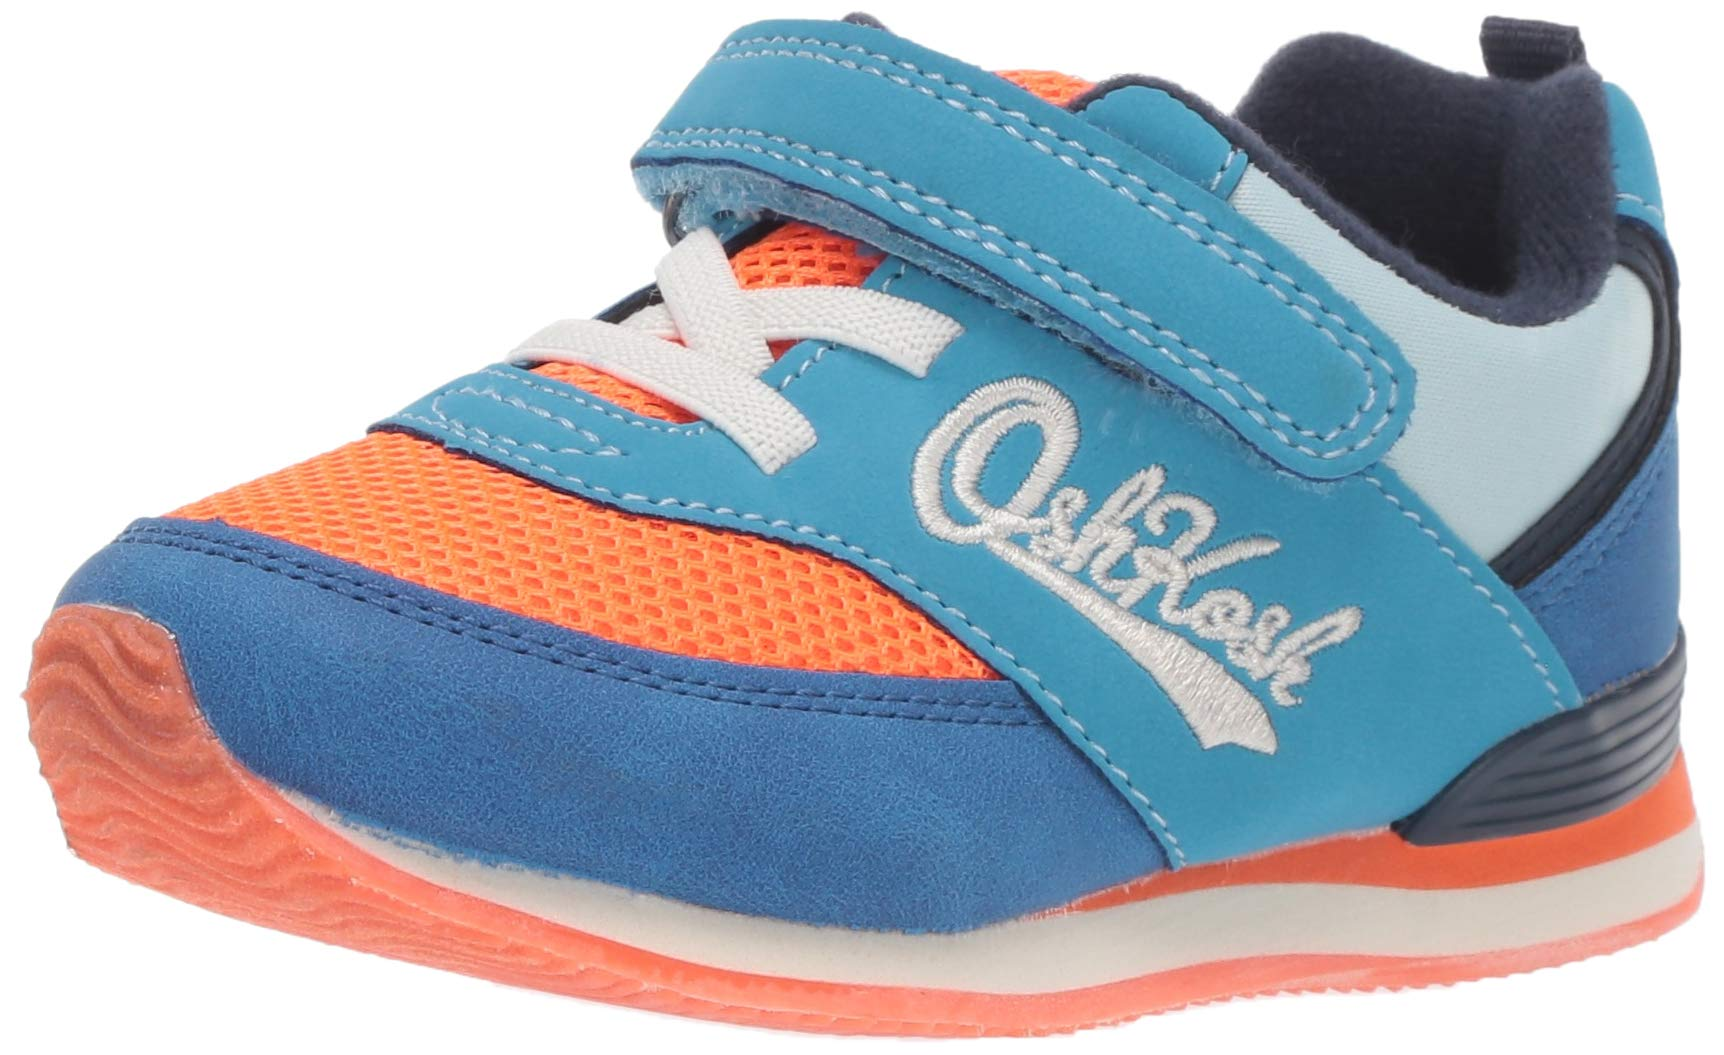 OshKosh B'Gosh Lu Boy's and Girl's Retro Athletic Sneaker, Orange, 9 M US Toddler by OshKosh B'Gosh